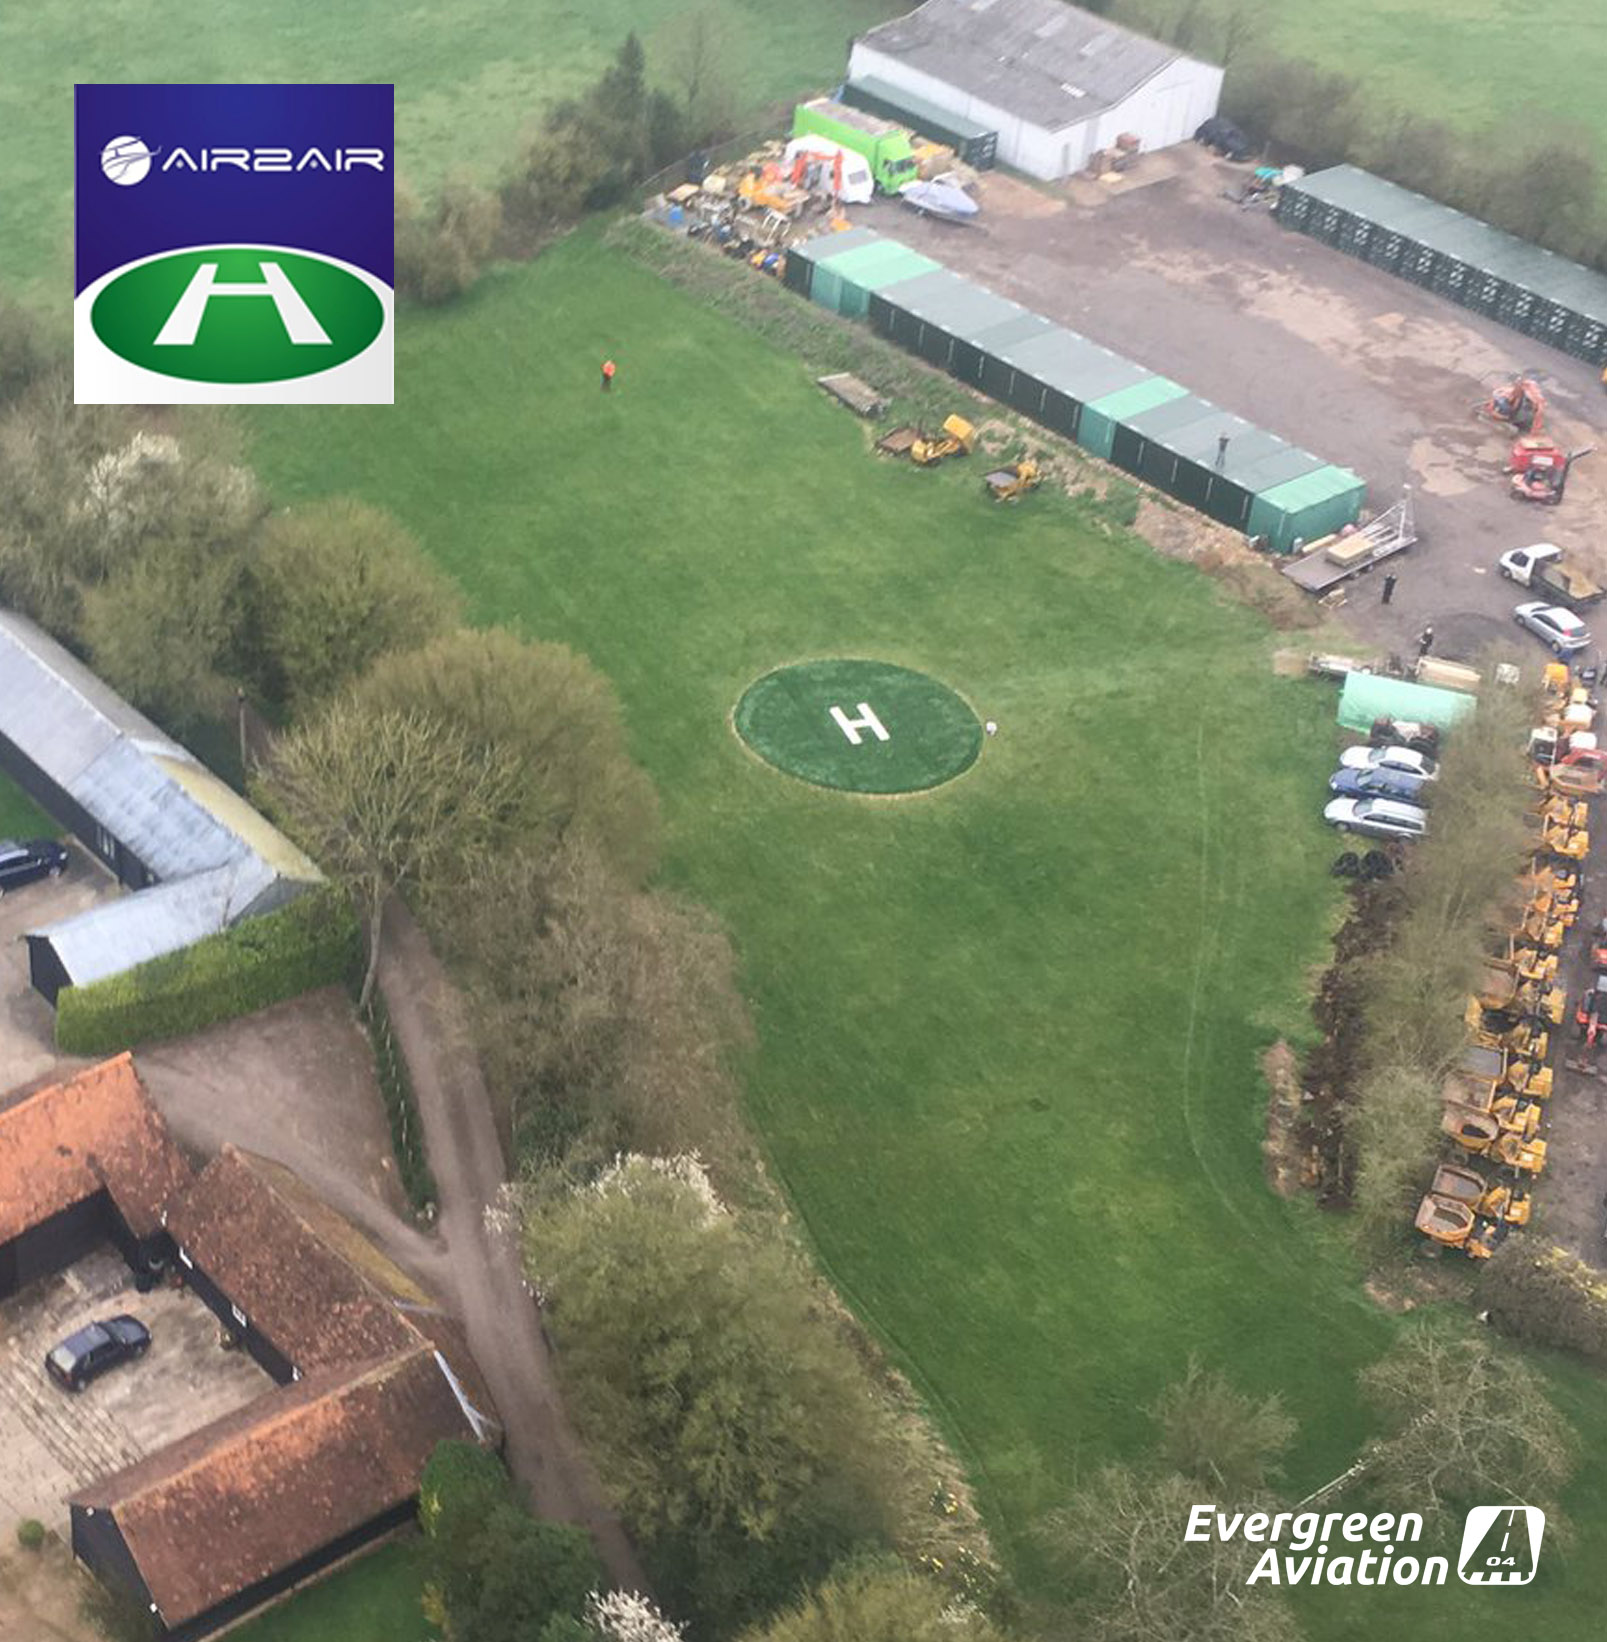 Evergreen Aviations UK AGAT Helipad partner, Air2Air 12092017